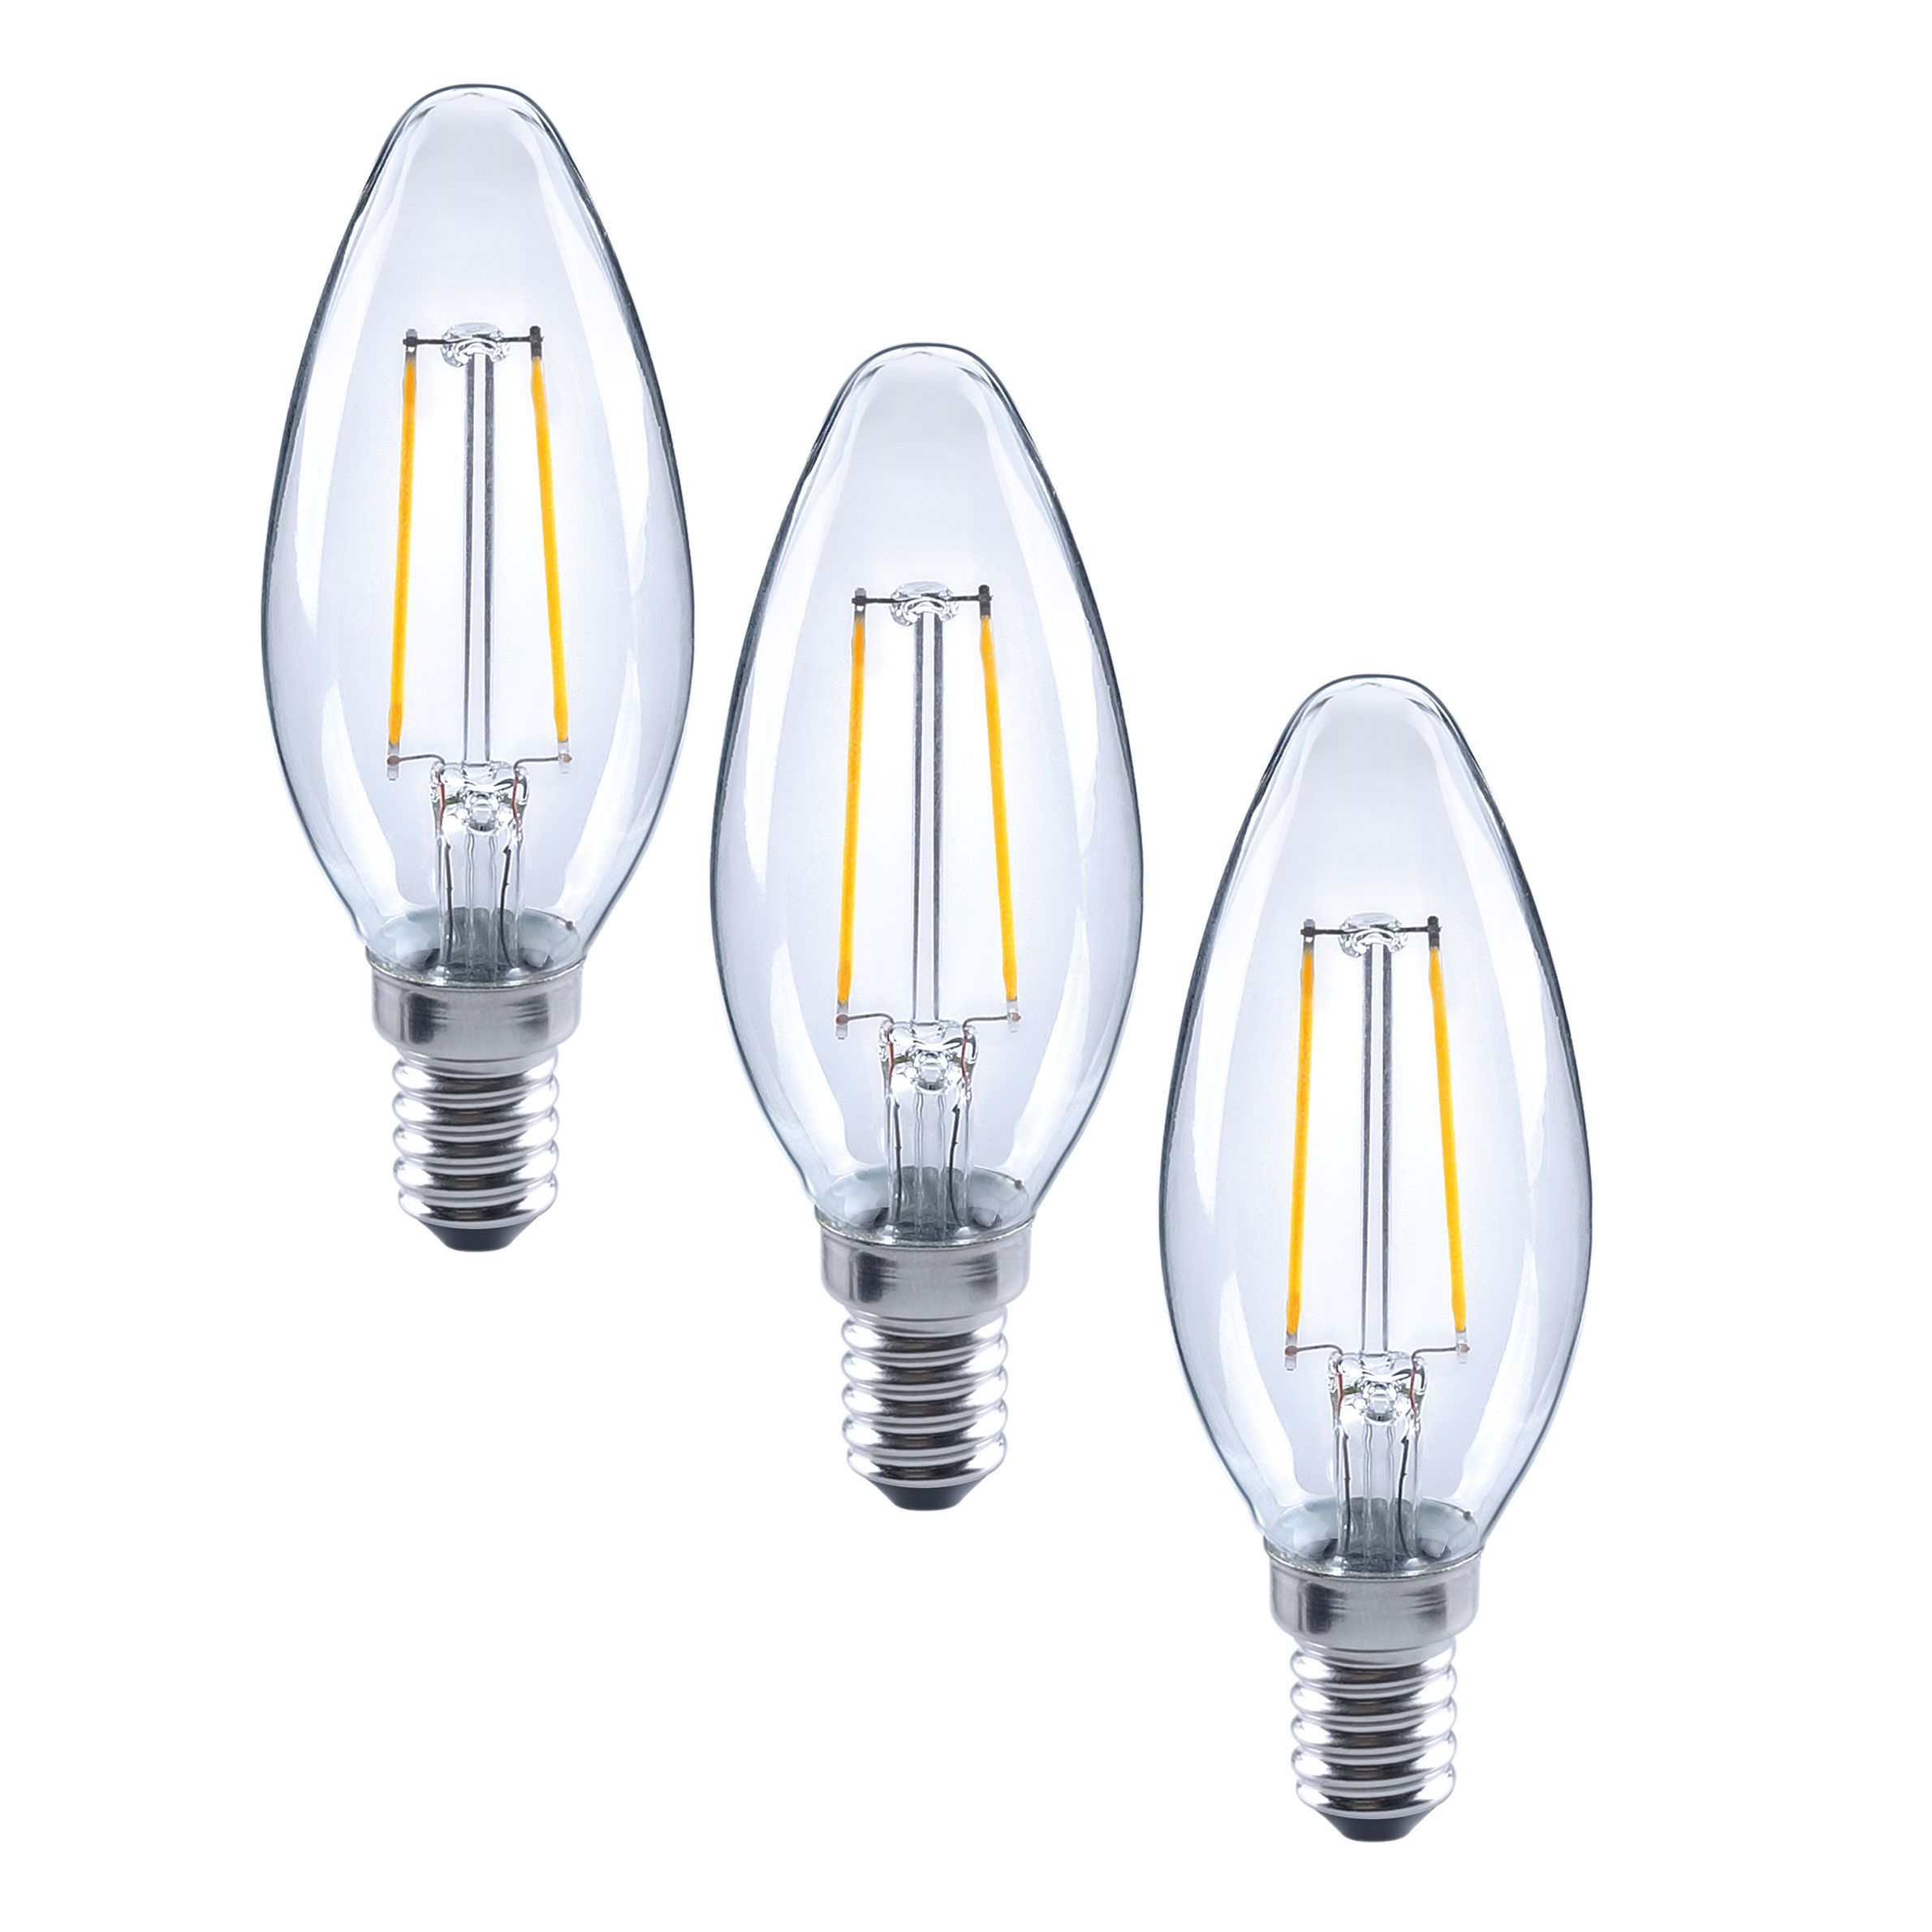 diall e14 2w led filament candle light bulb pack of 3 departments diy at b q. Black Bedroom Furniture Sets. Home Design Ideas